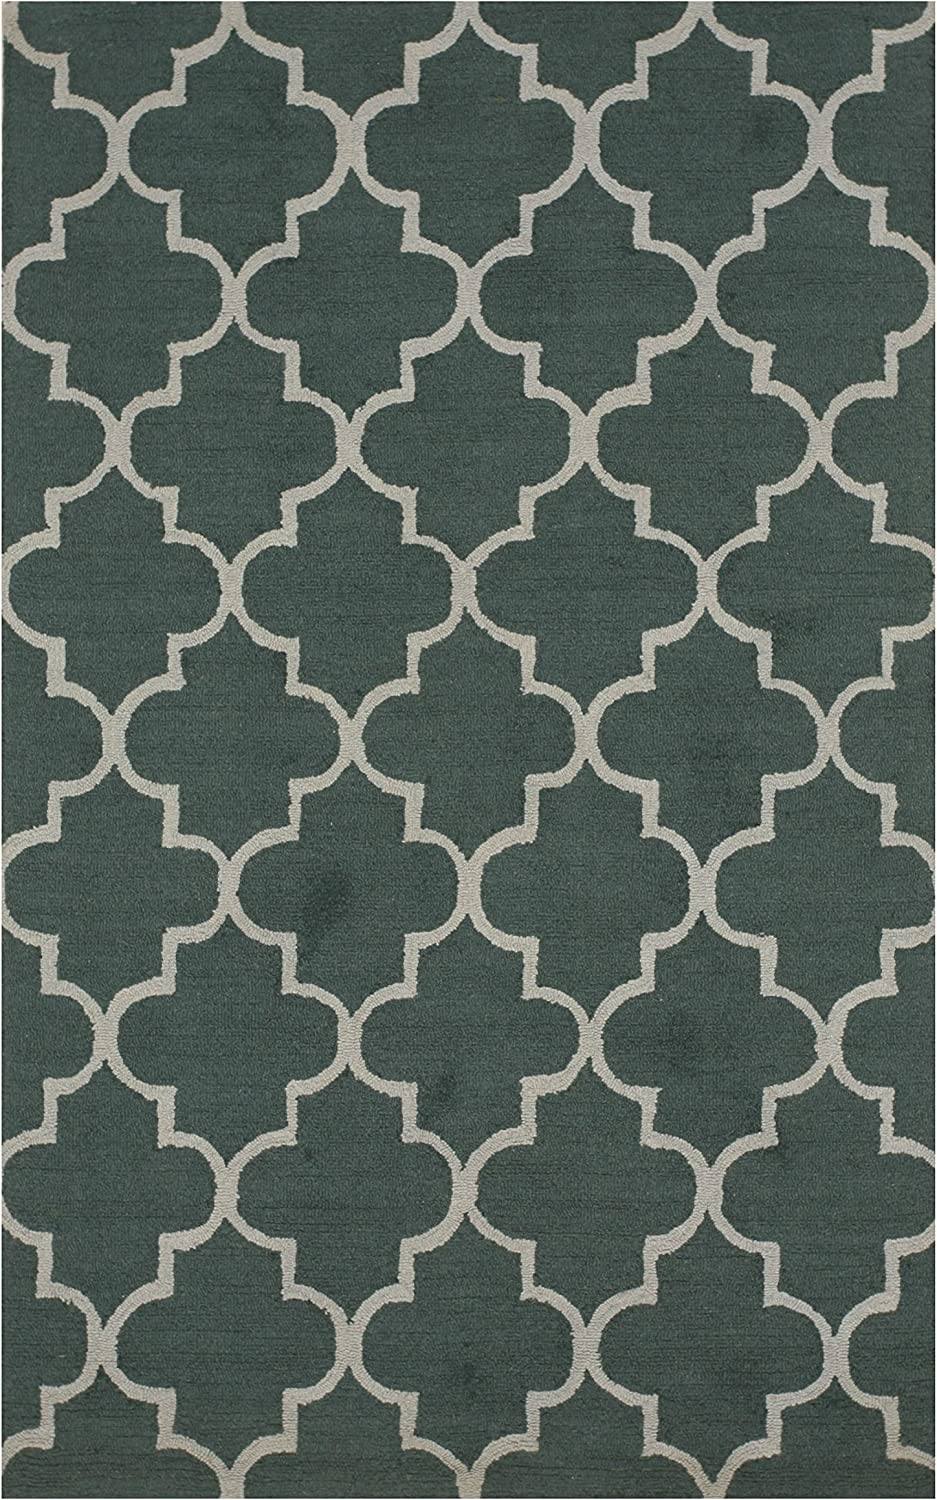 EORC ME2GN5X7 Hand-Tufted Wool Moroccan 5' Rug Green Inventory cleanup selling sale 7' x Cheap mail order sales